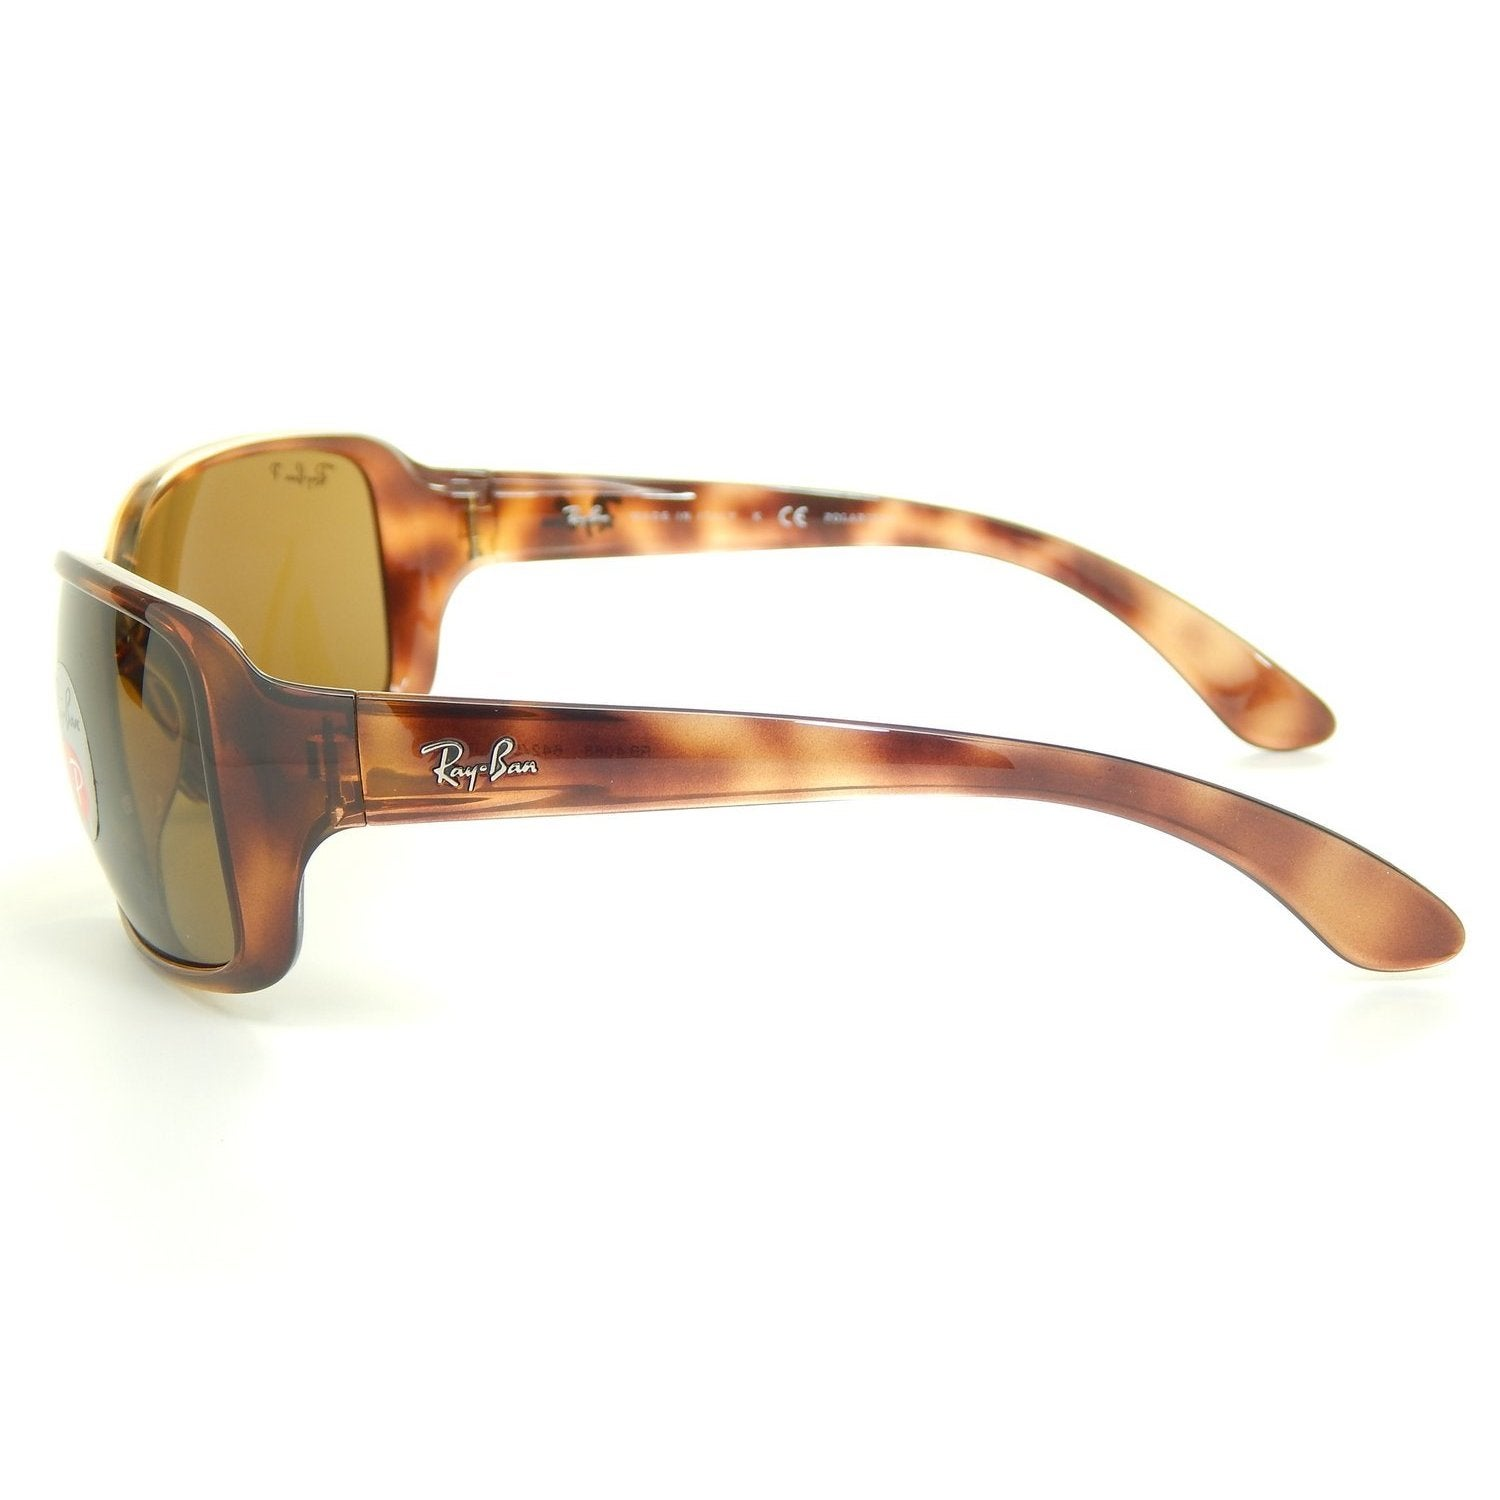 8156ce8a4 Ray Ban Meaning In Hindi « One More Soul